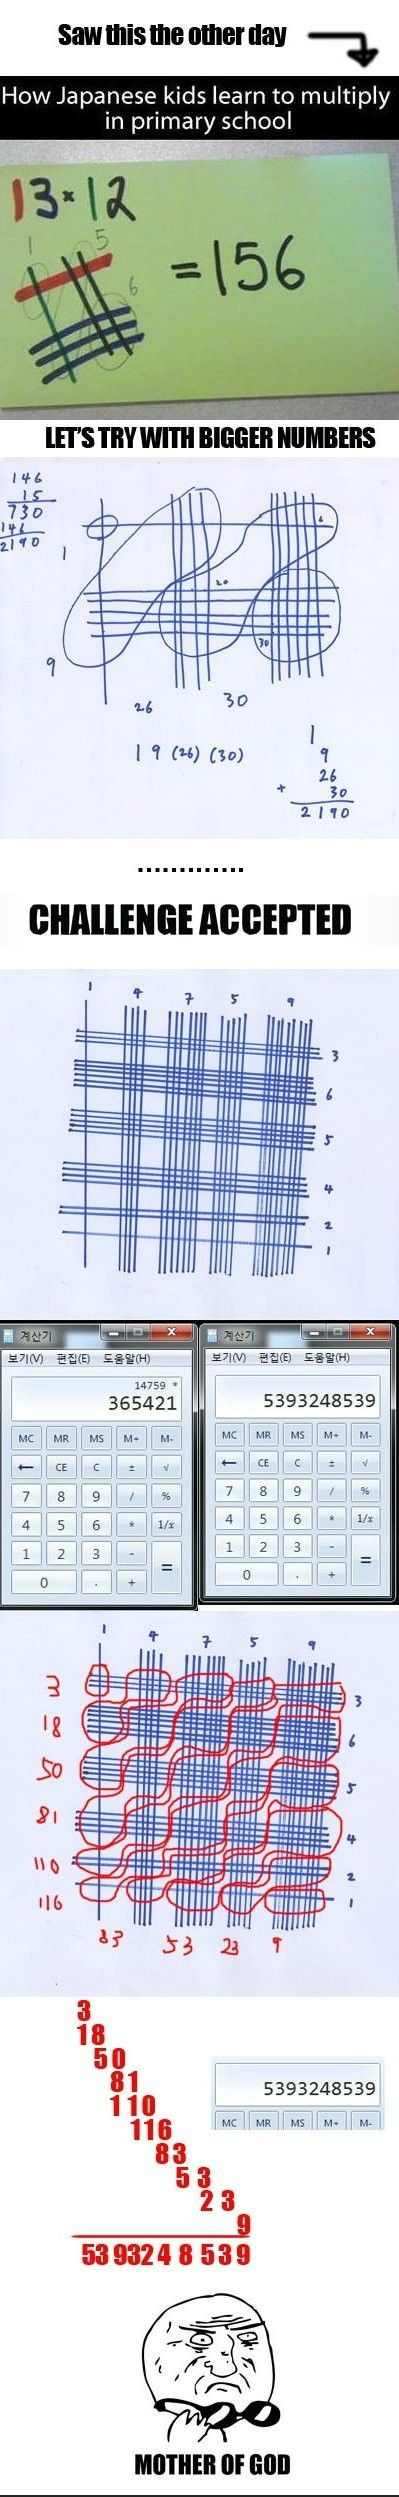 How Japanese School Children Learn to Multiply? - Imgur. Blew my mind!